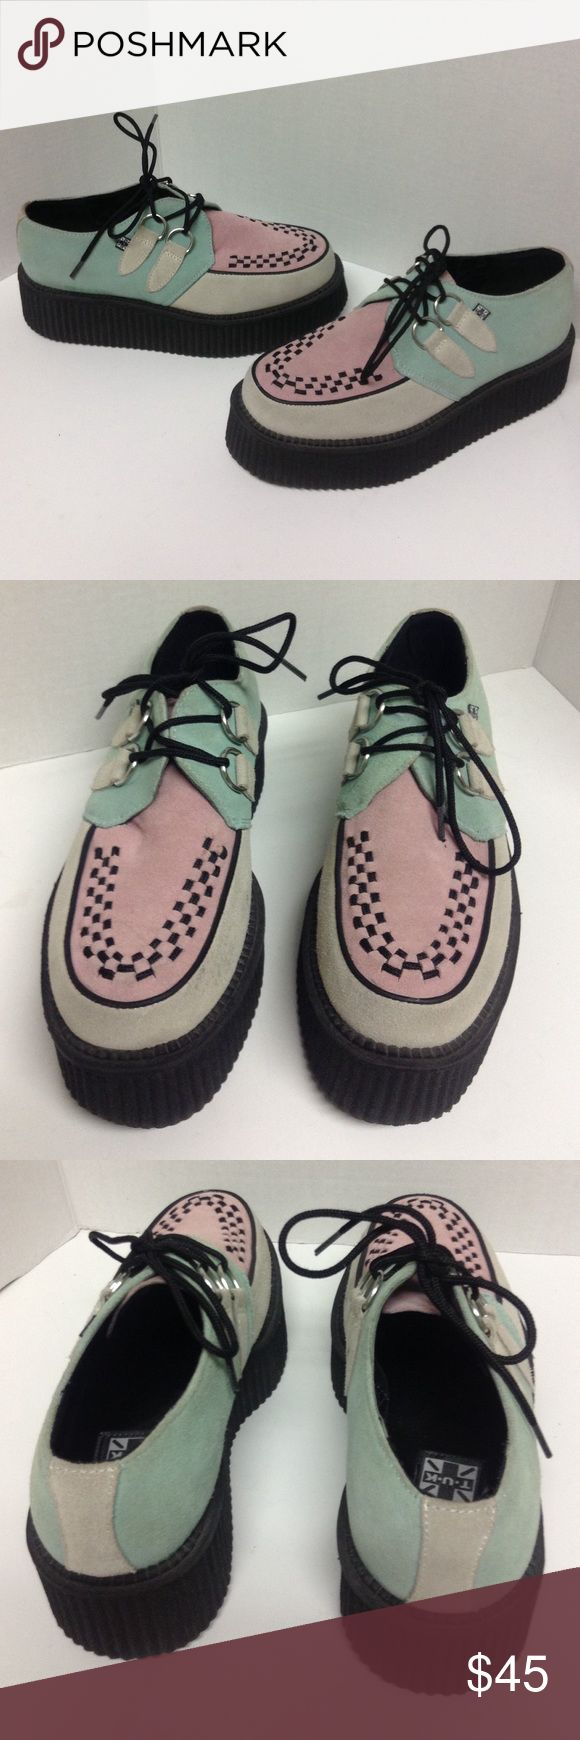 TUK Pink & Green Suede Creepers TUK Pink & Green Suede Creepers Sz8 in women's . Gently worn great condition with very light signs of wear. TUK Shoes Platforms